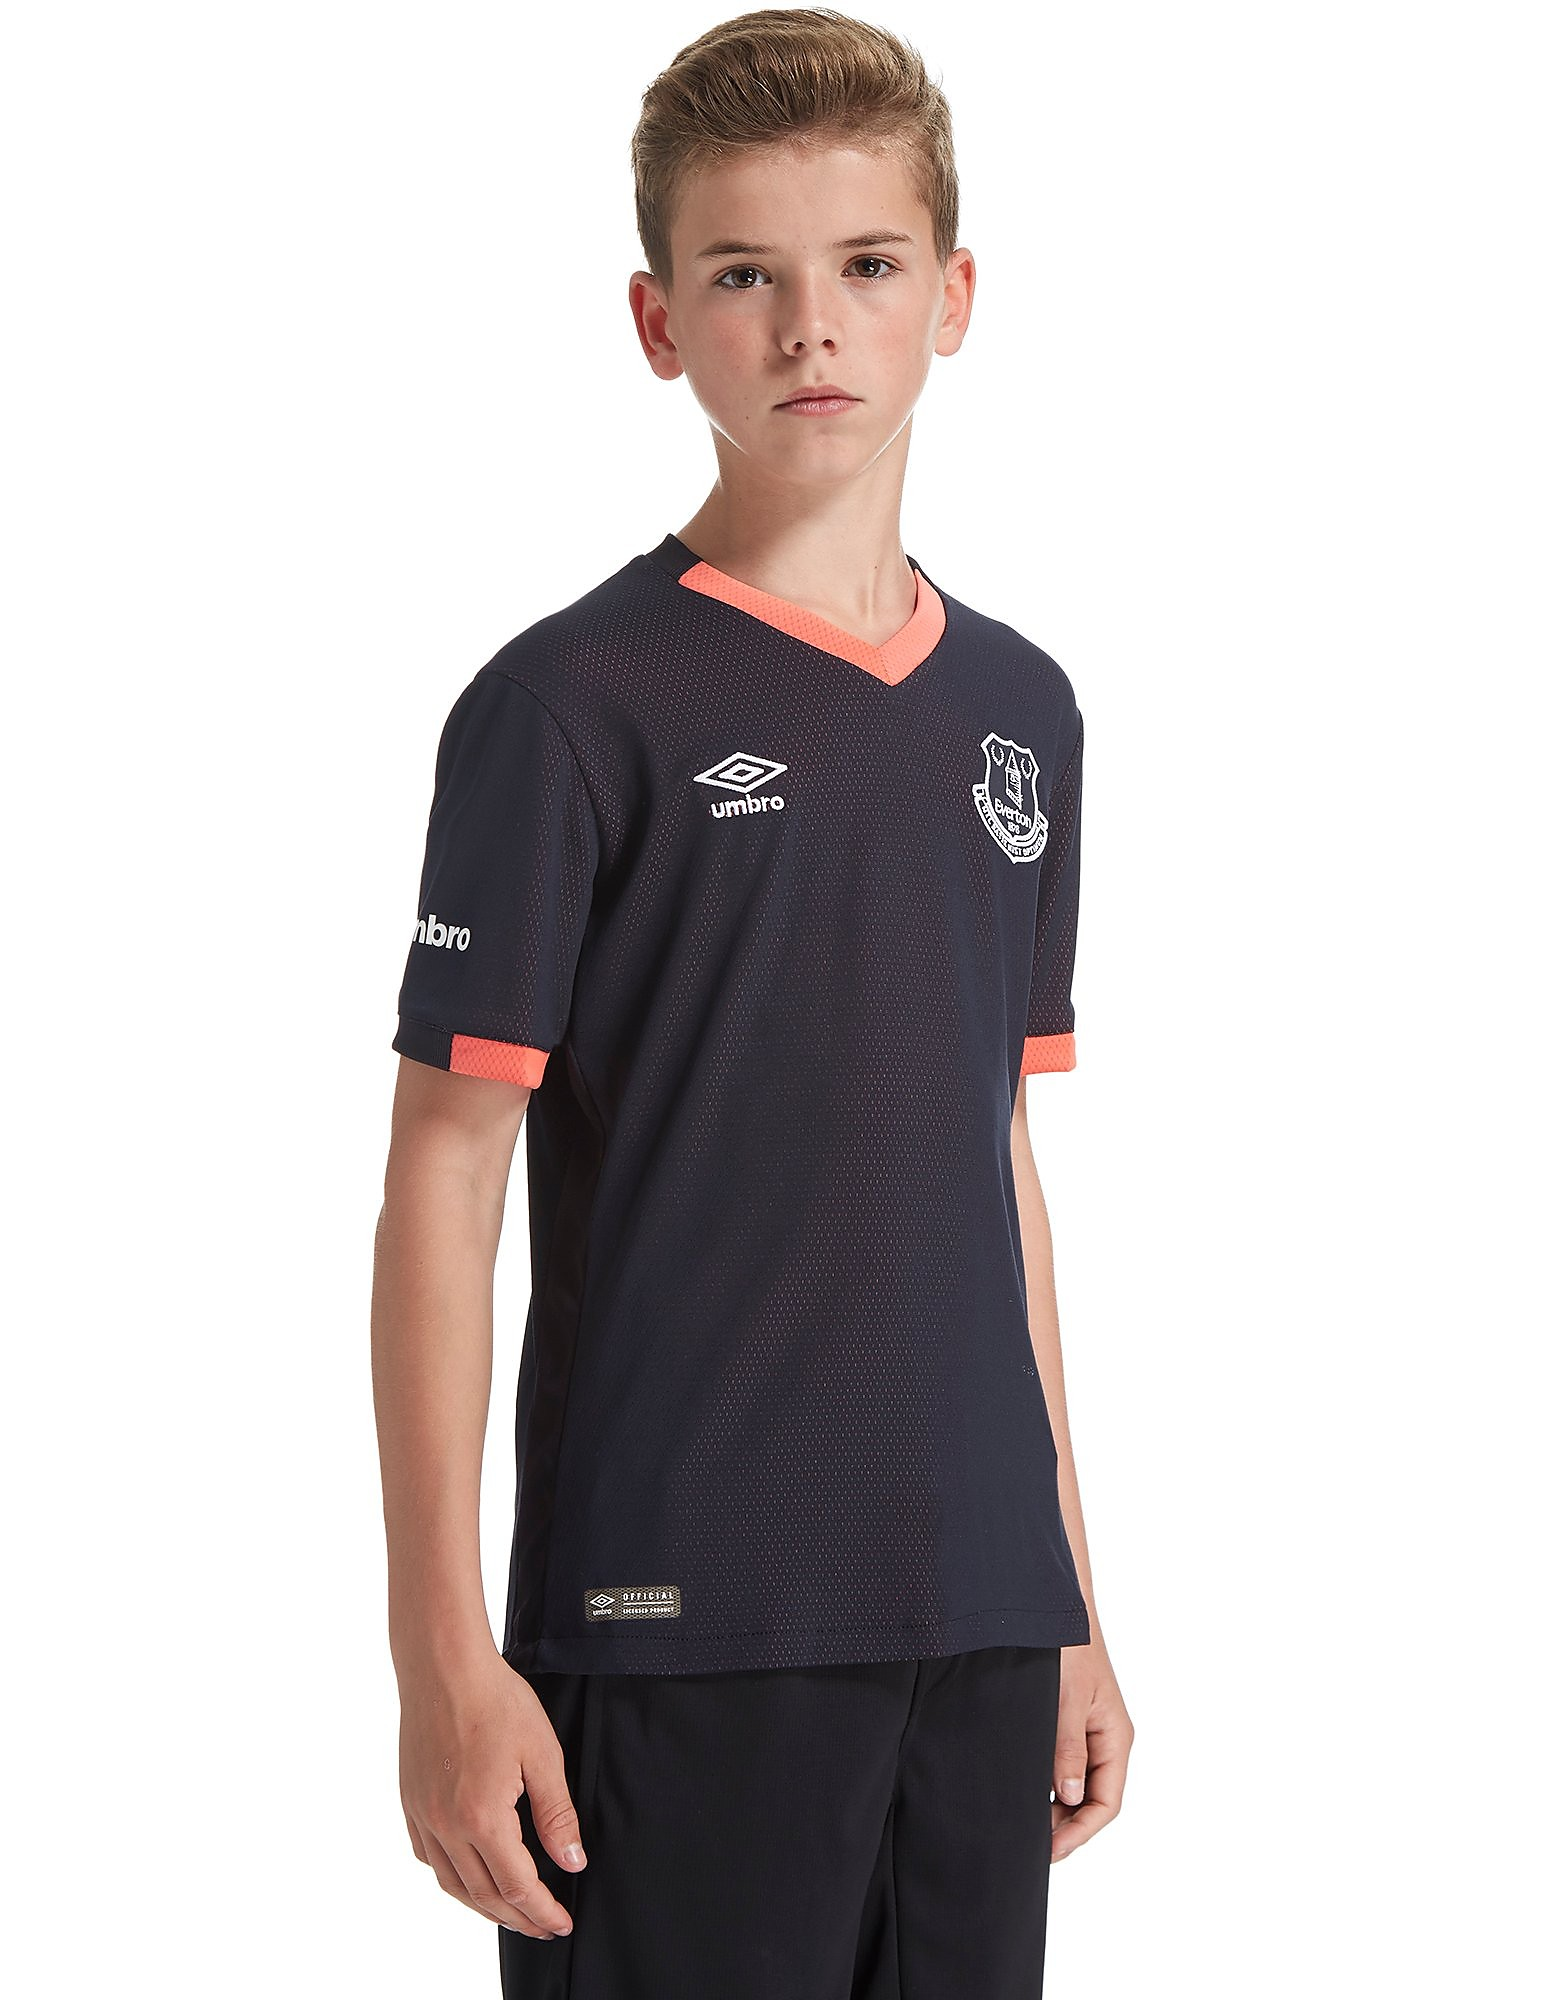 Umbro Everton FC 2016/17 Away Shirt Junior